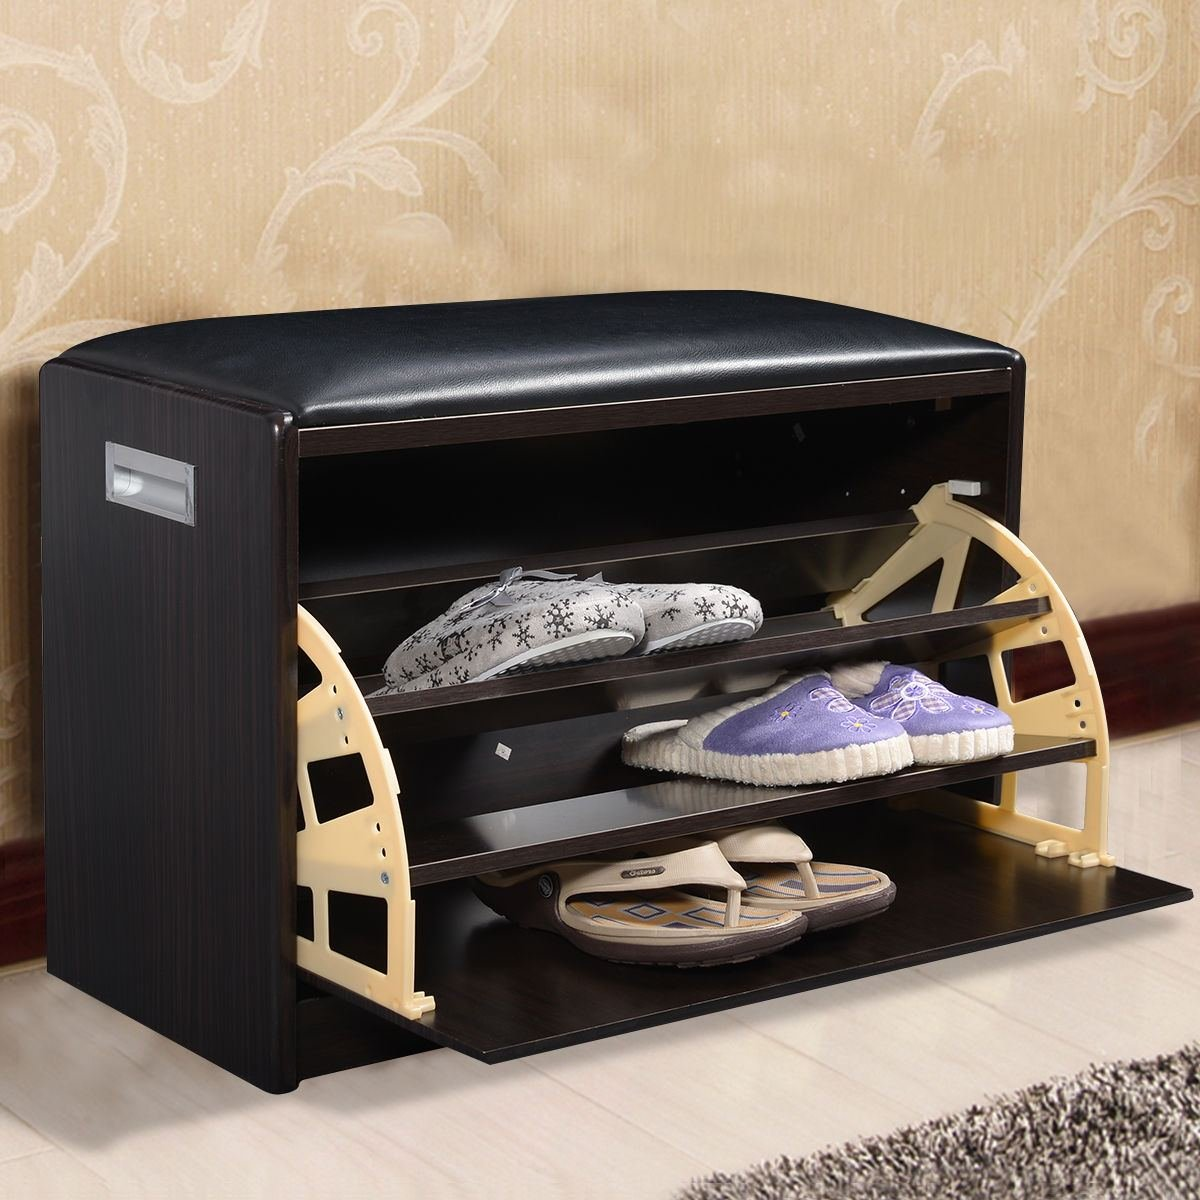 MasterPanel - Wood Shoe Storage Bench Ottoman Cabinet Closet Shelf Entryway Multipurpose #TP3305